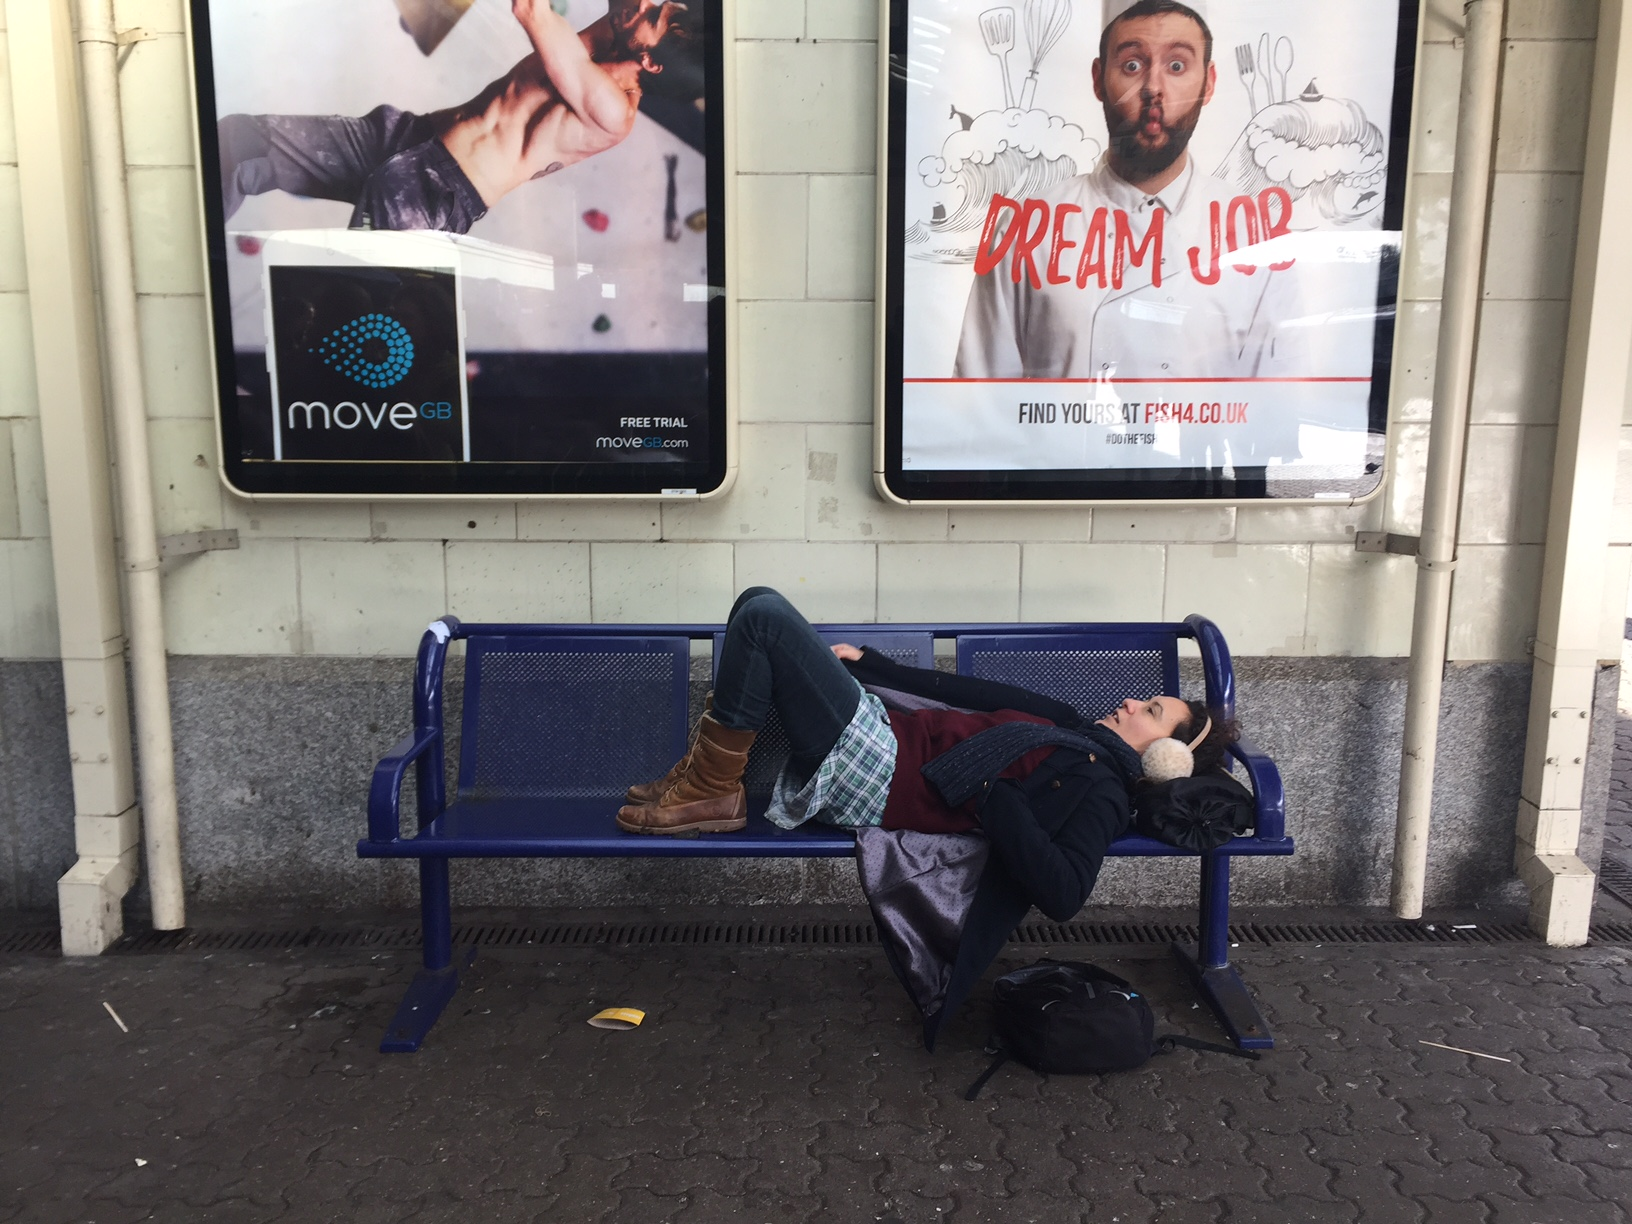 Centre of the image is a blue bench with a lady laying down on it with two billboard posters on the wall behind her